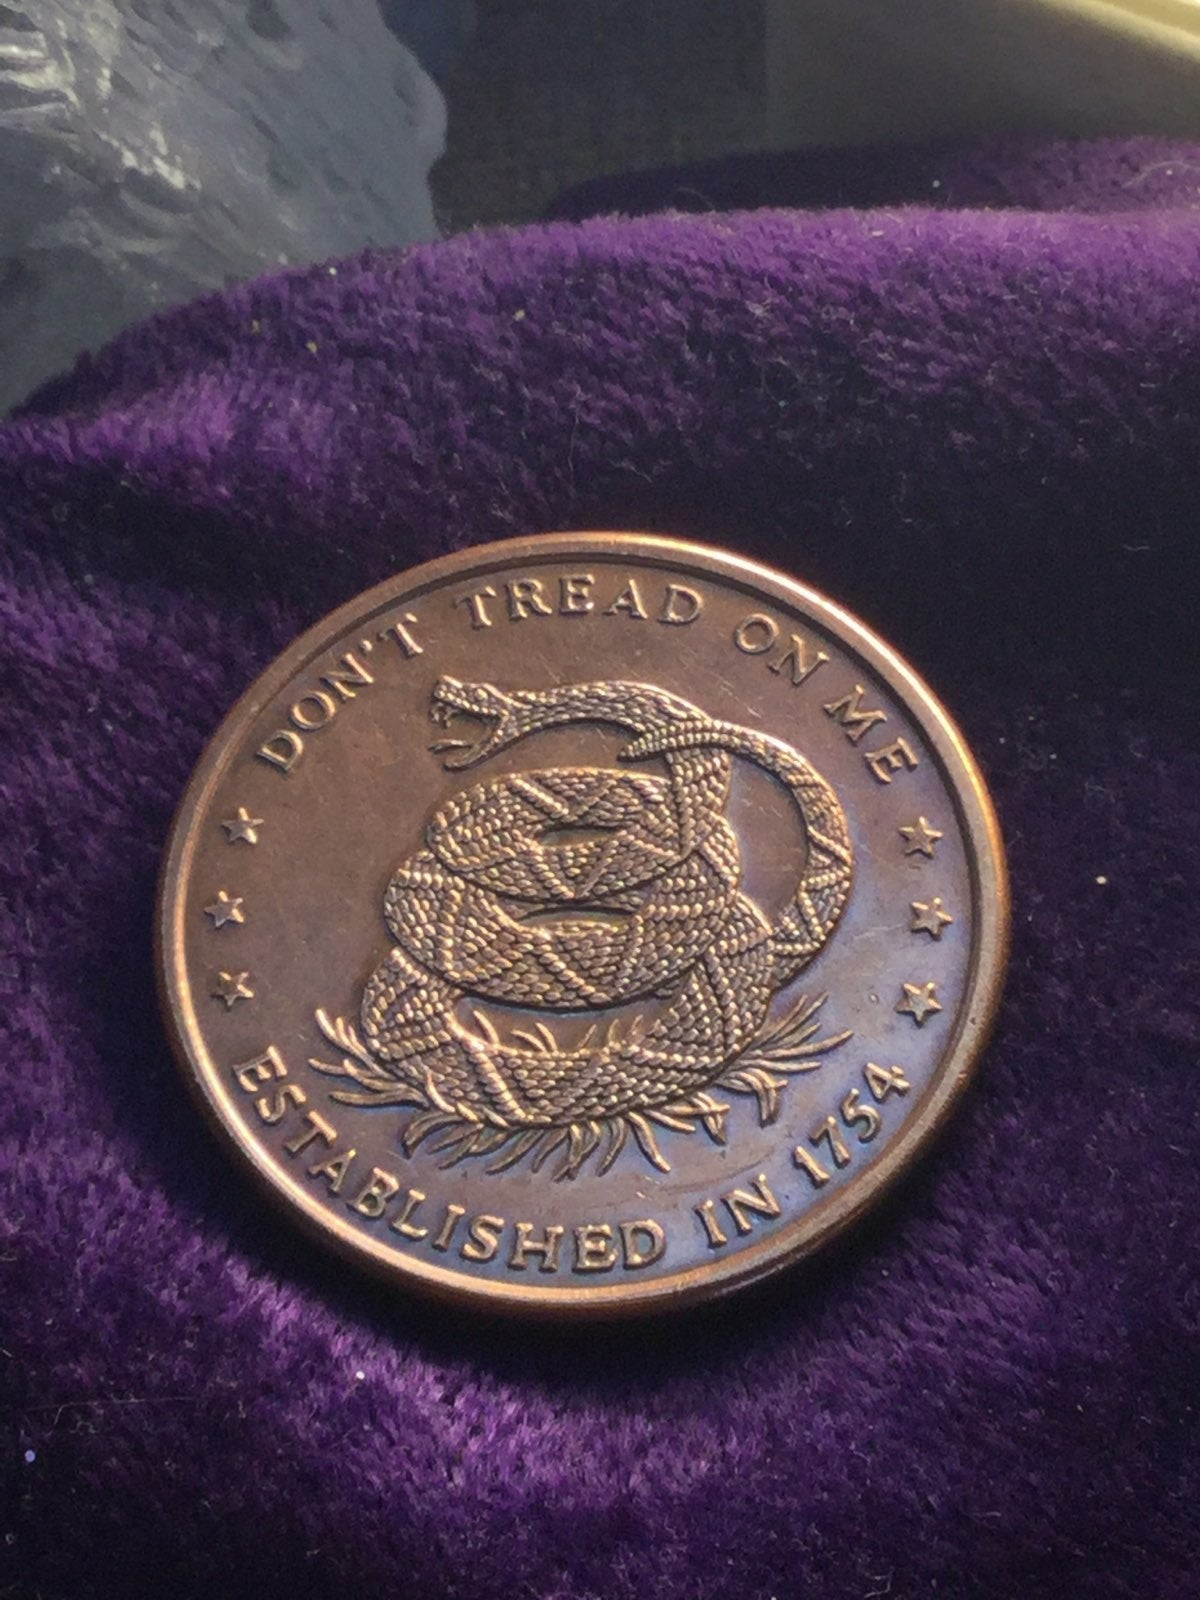 Don't Tread on Me Price of Liberty Coin